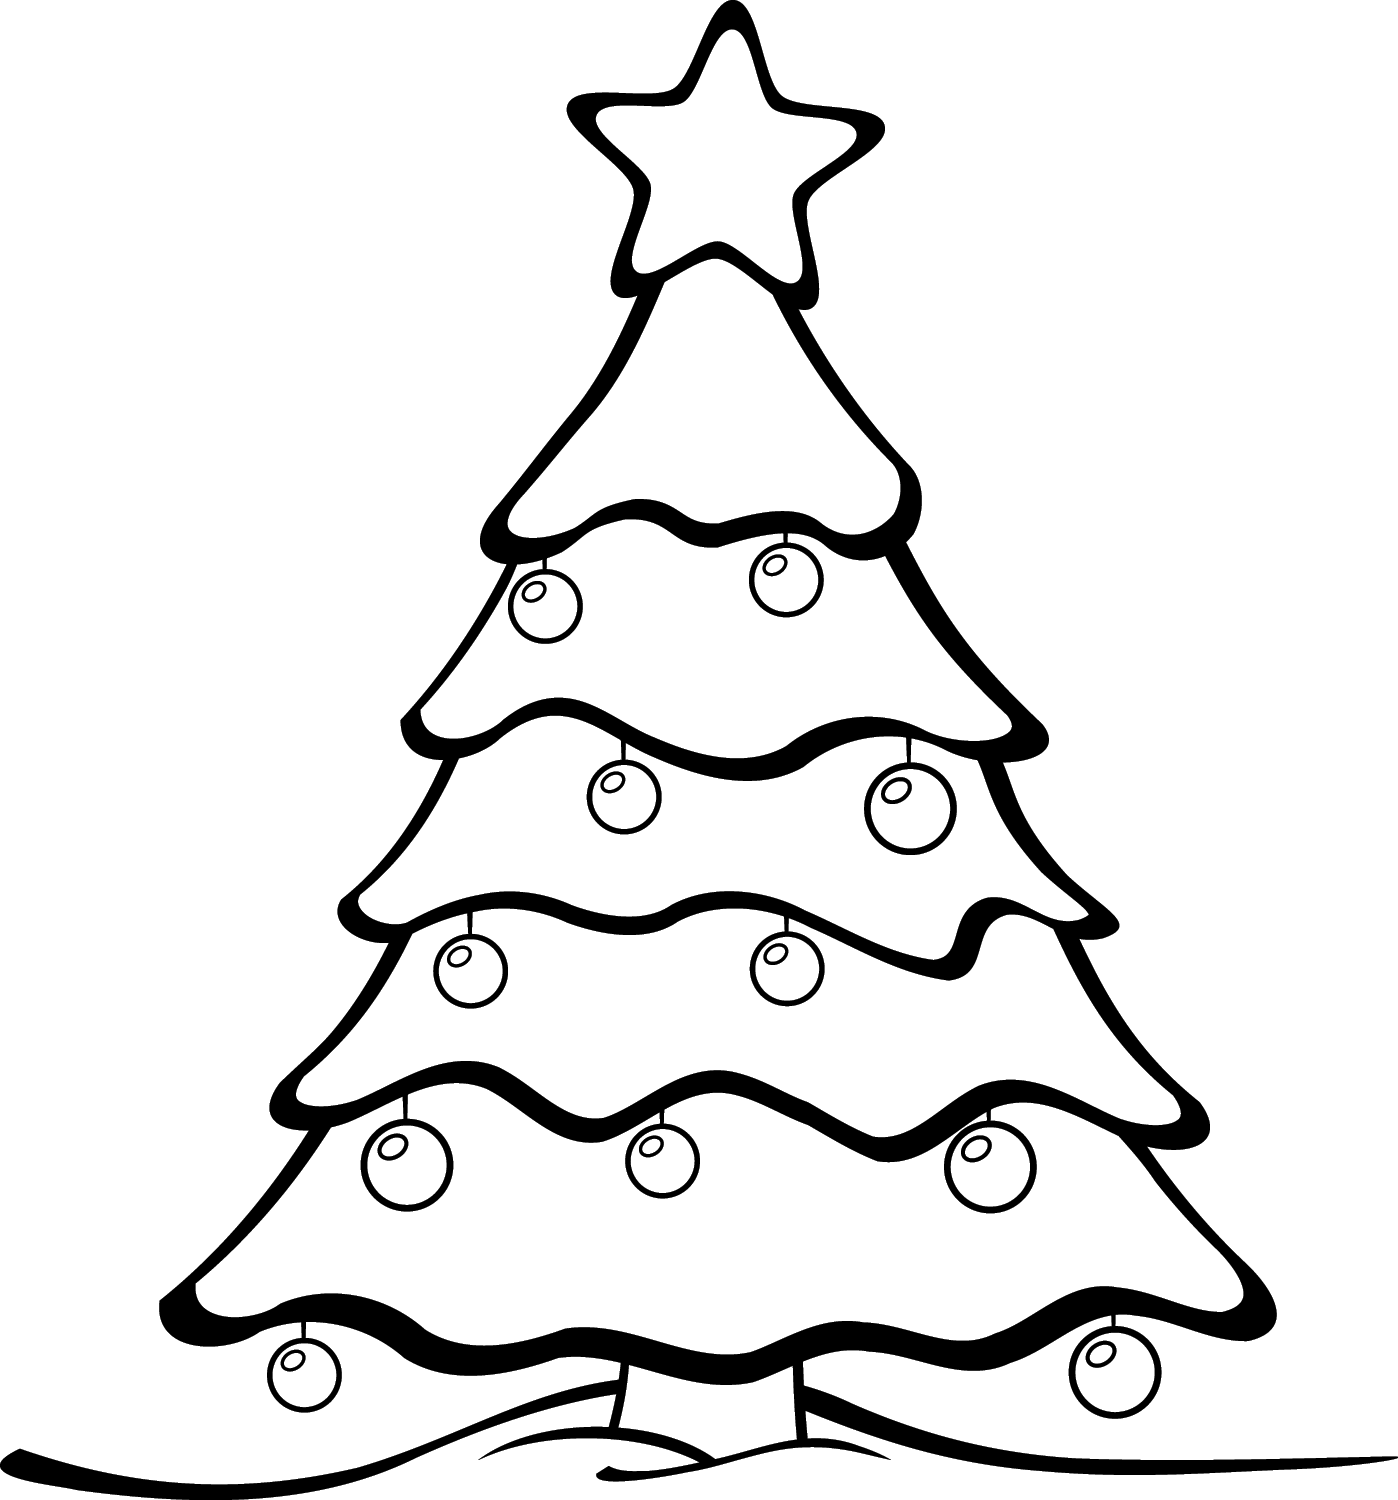 1398x1500 Christmas Star Black And White Clipart